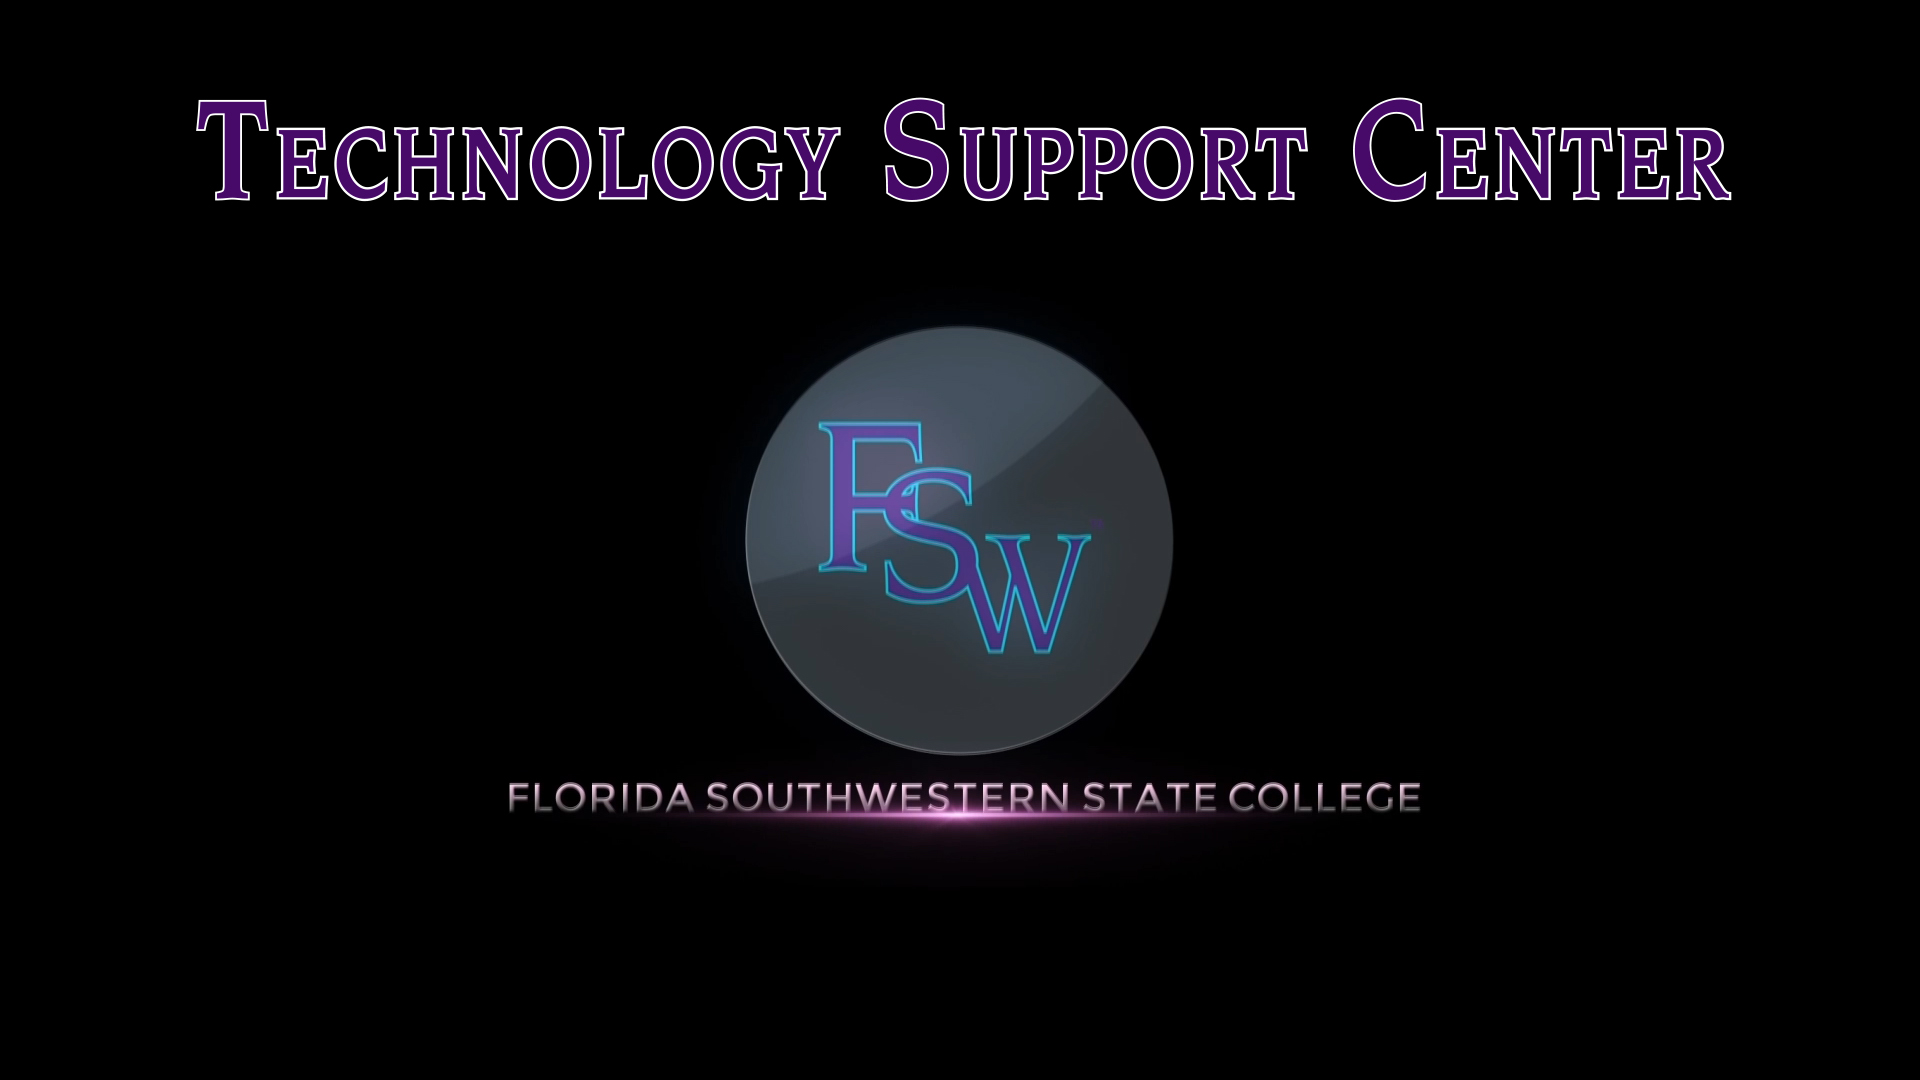 Technology Support Center Image link to overview video